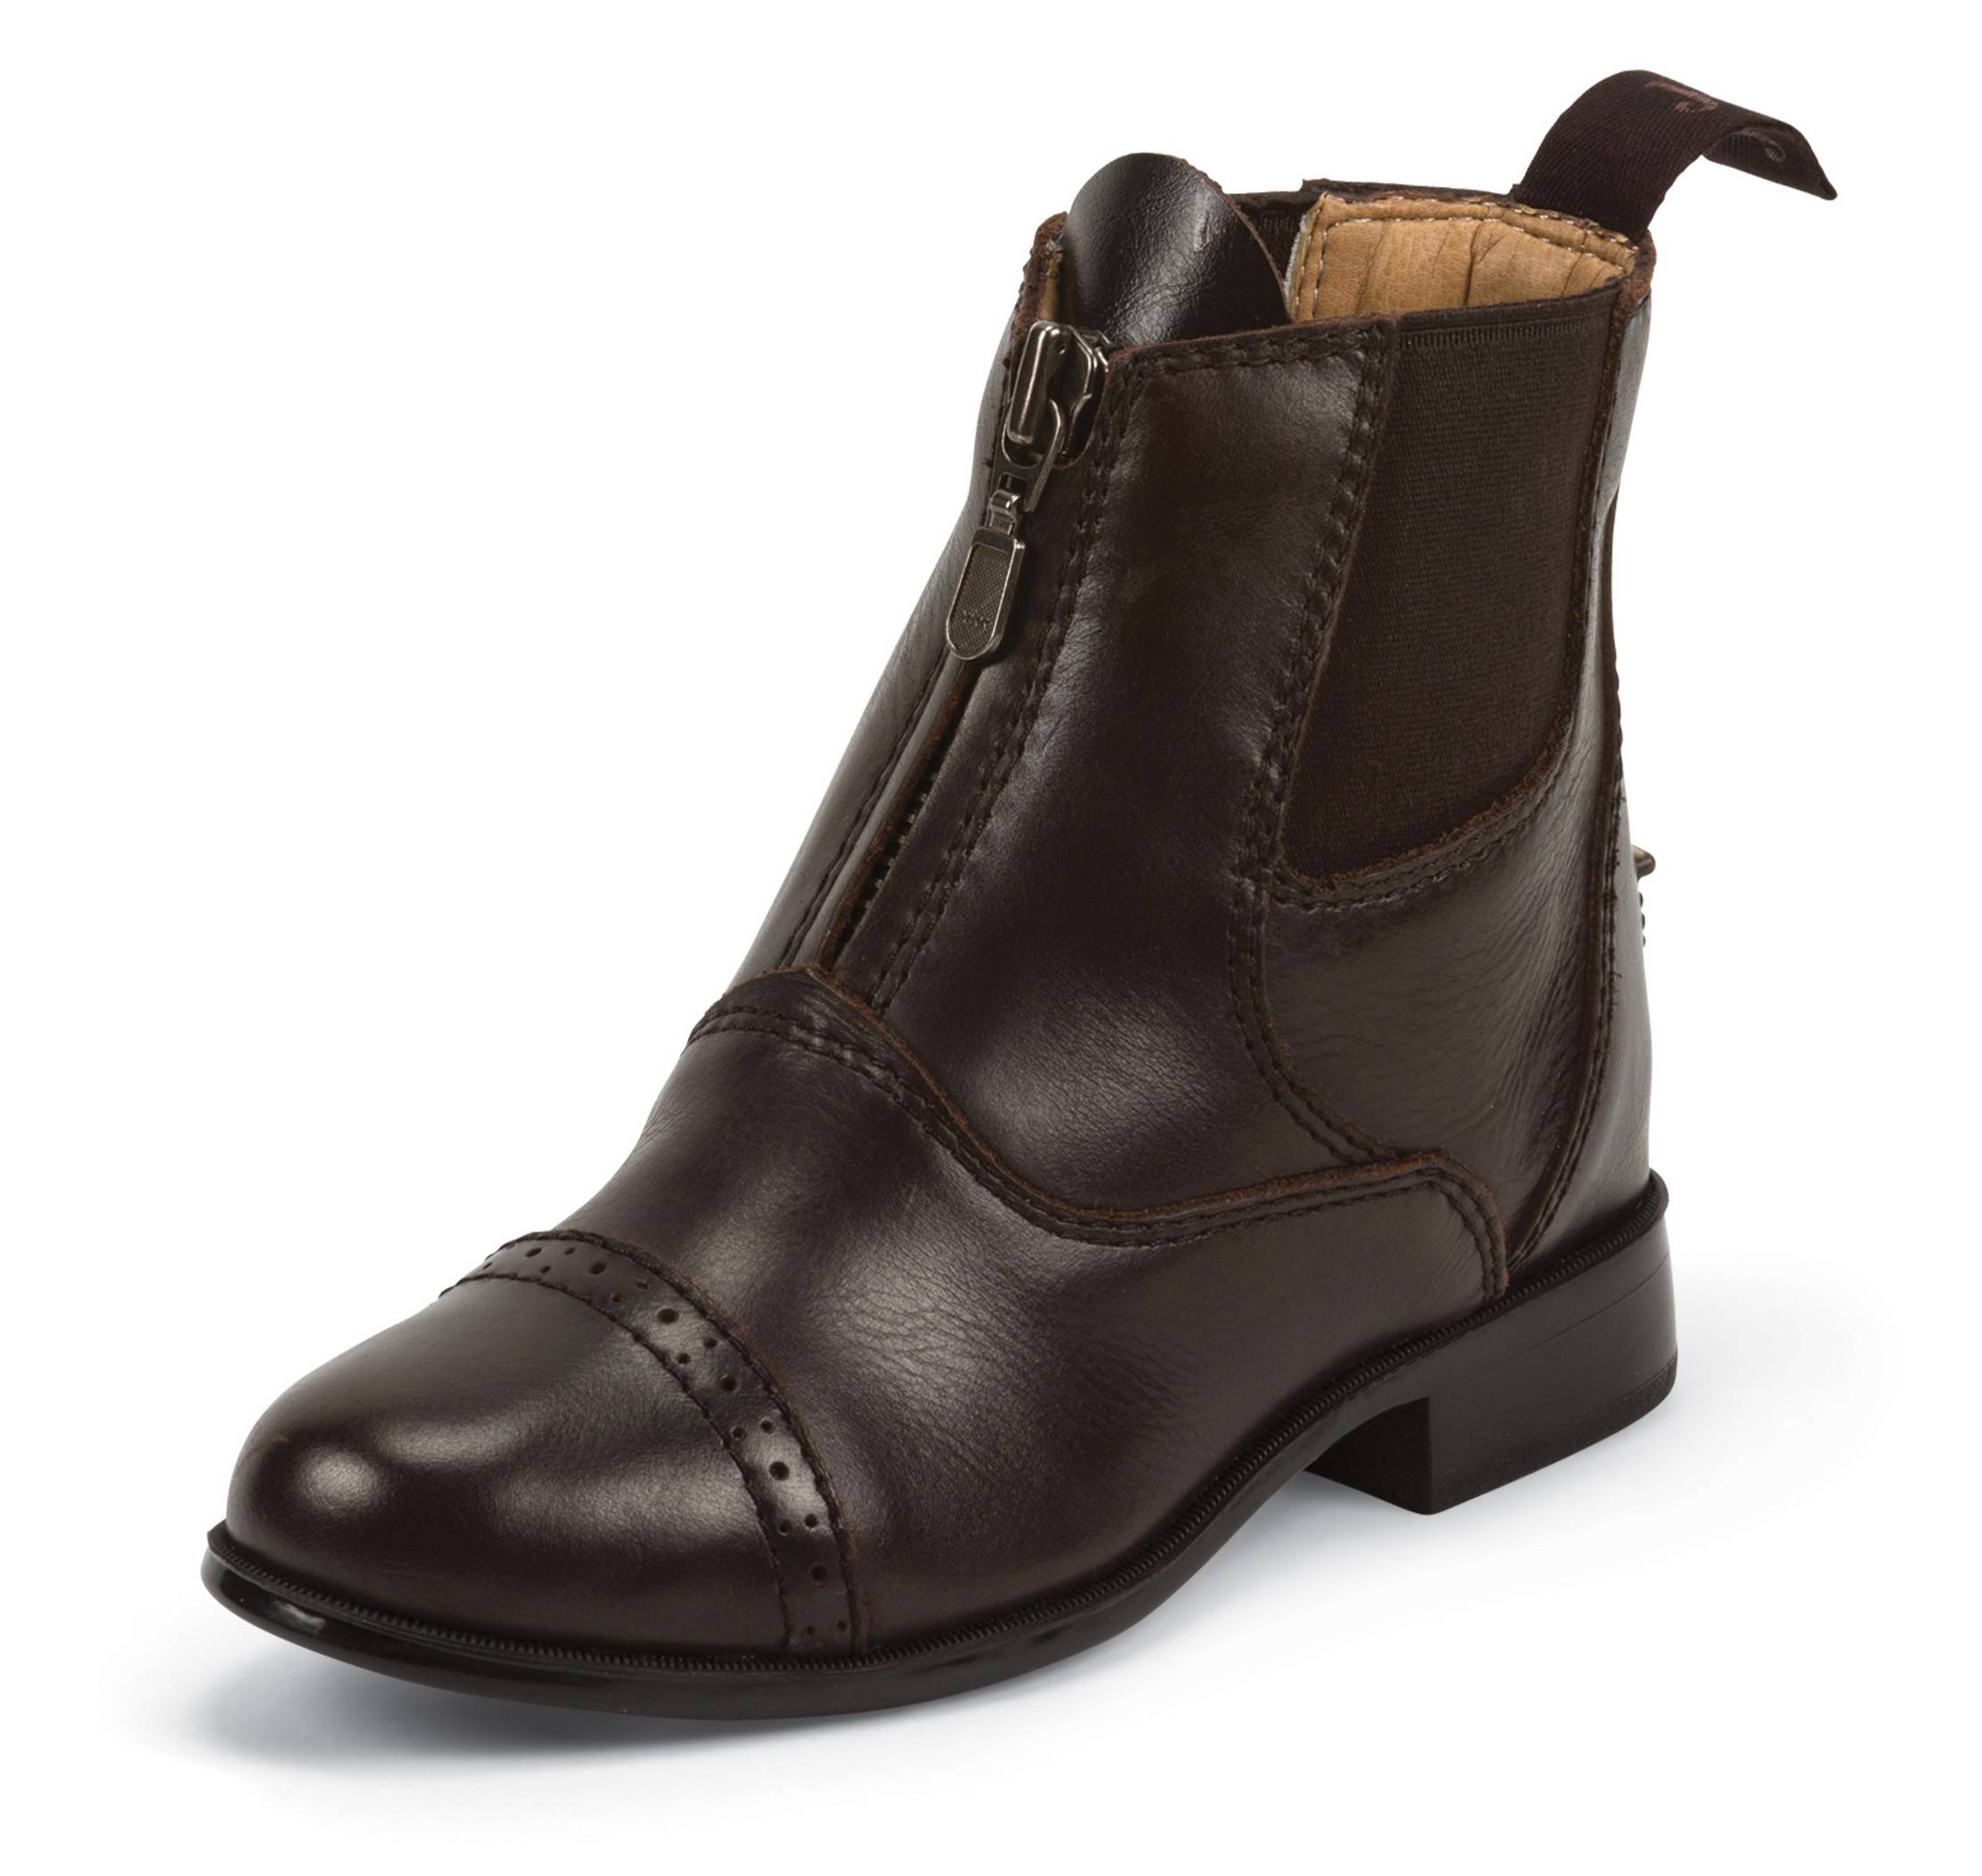 Justin Kids Zip Paddock Boots - Chocolate Brown